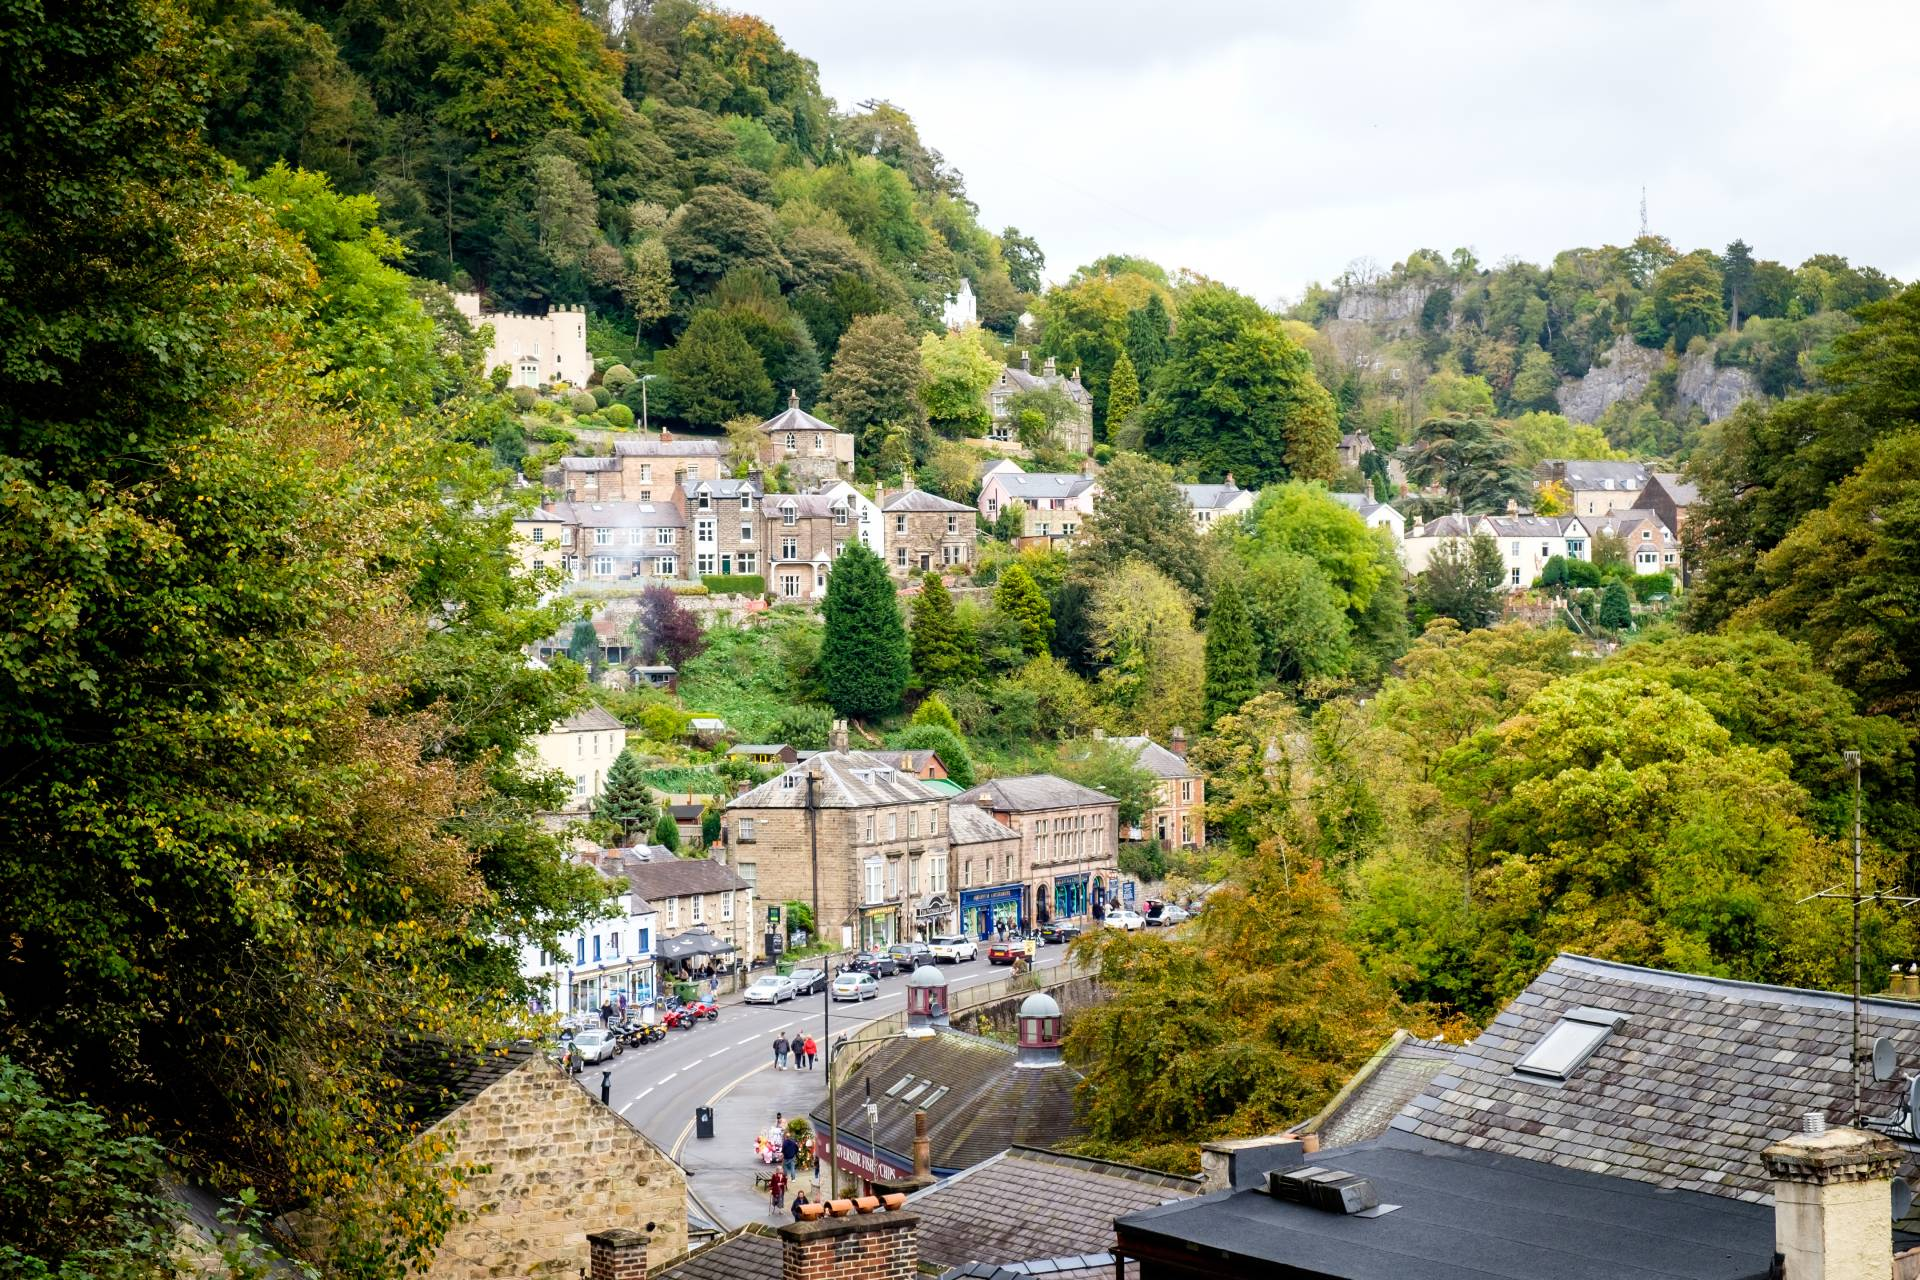 Matlock Bath on the fringes of the Peak District